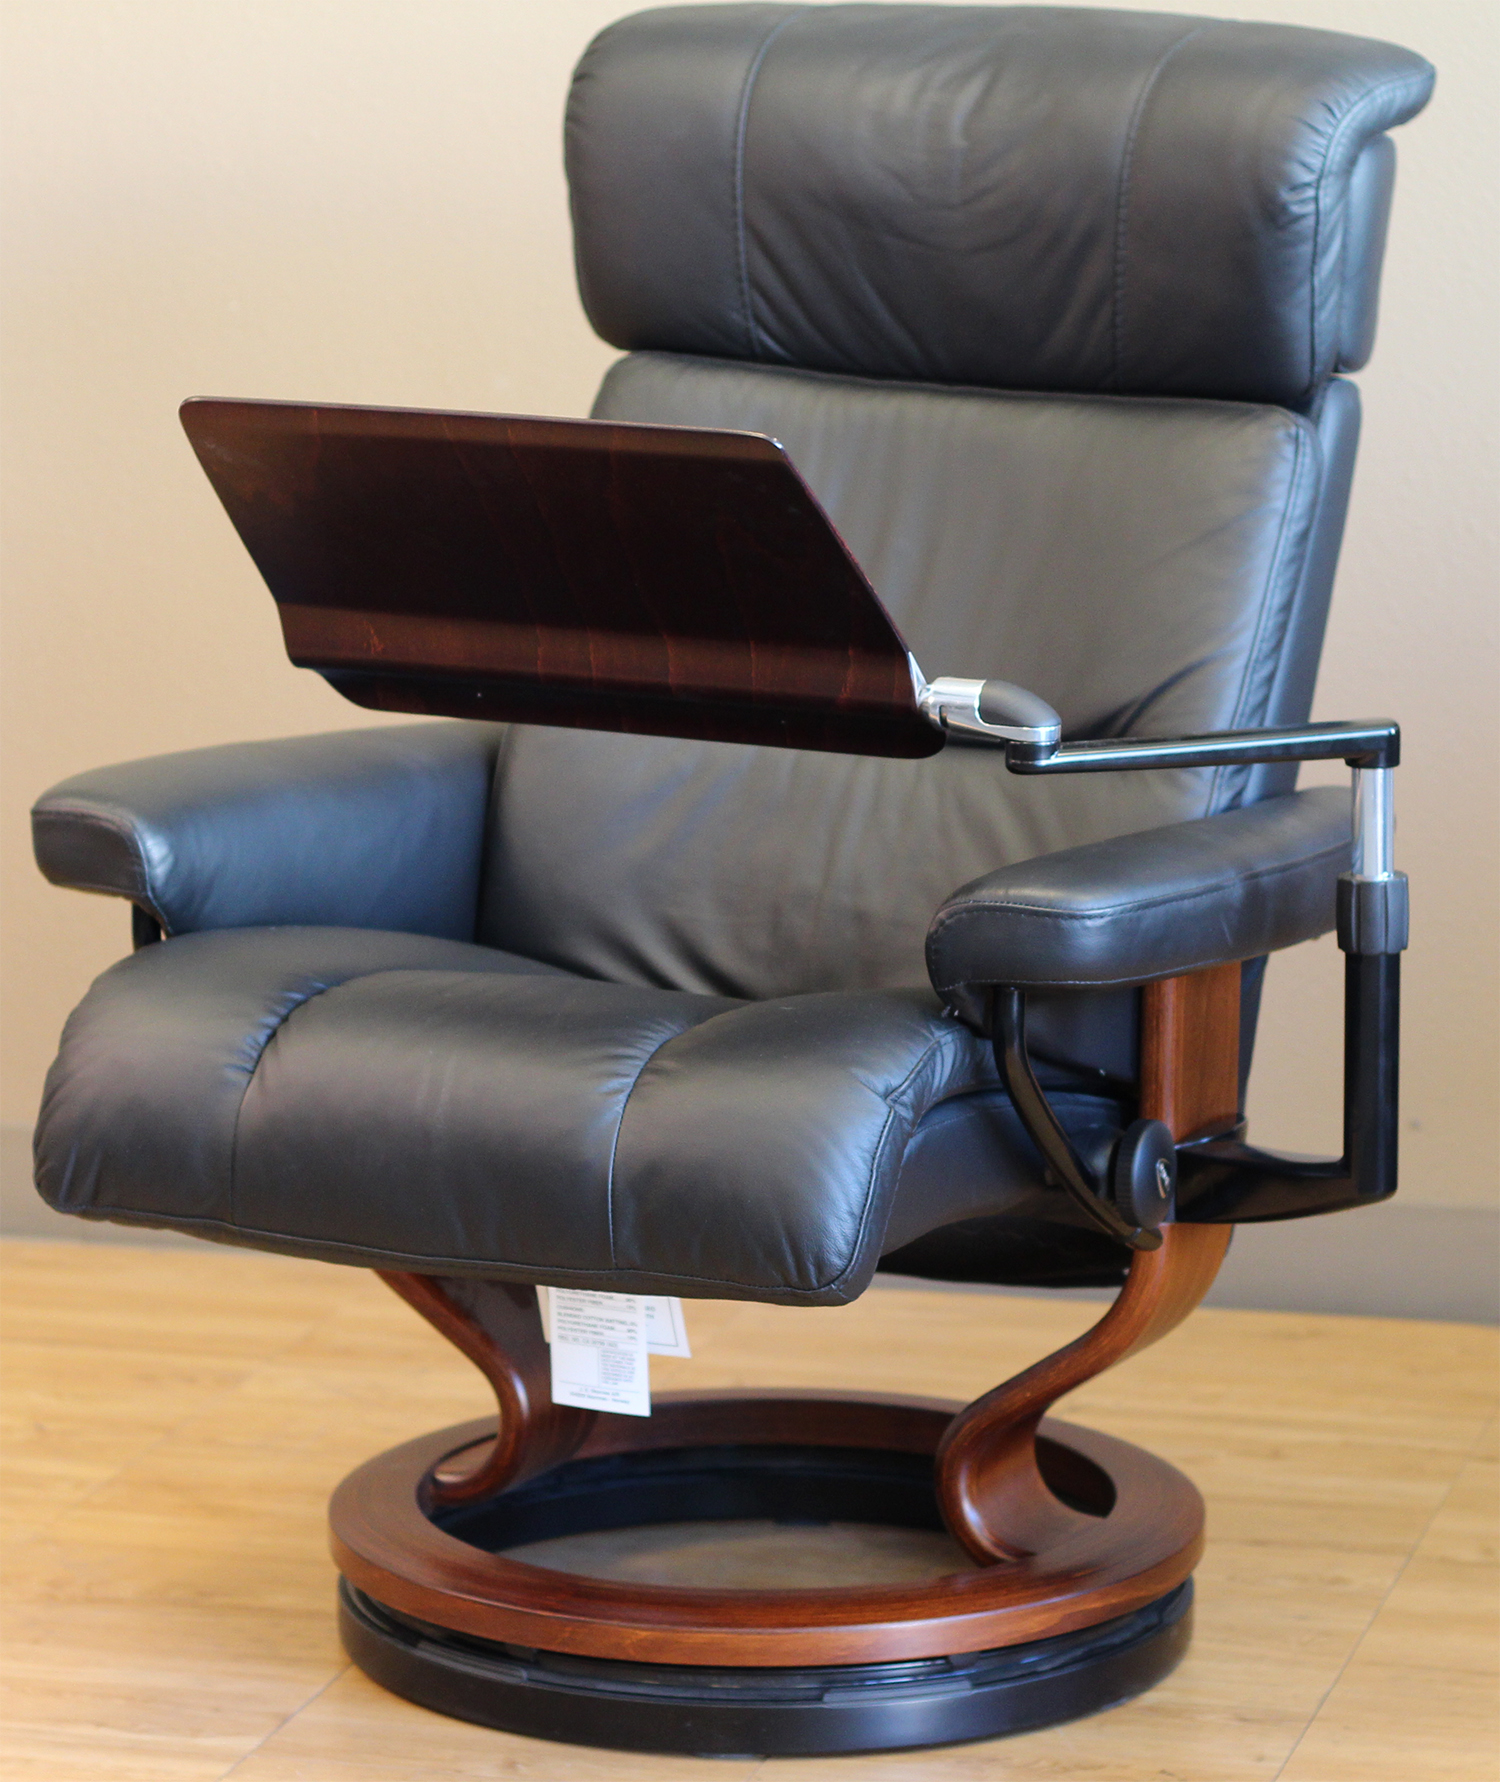 Stressless Office Chair Stressless Recliner Personal Computer Laptop Table For